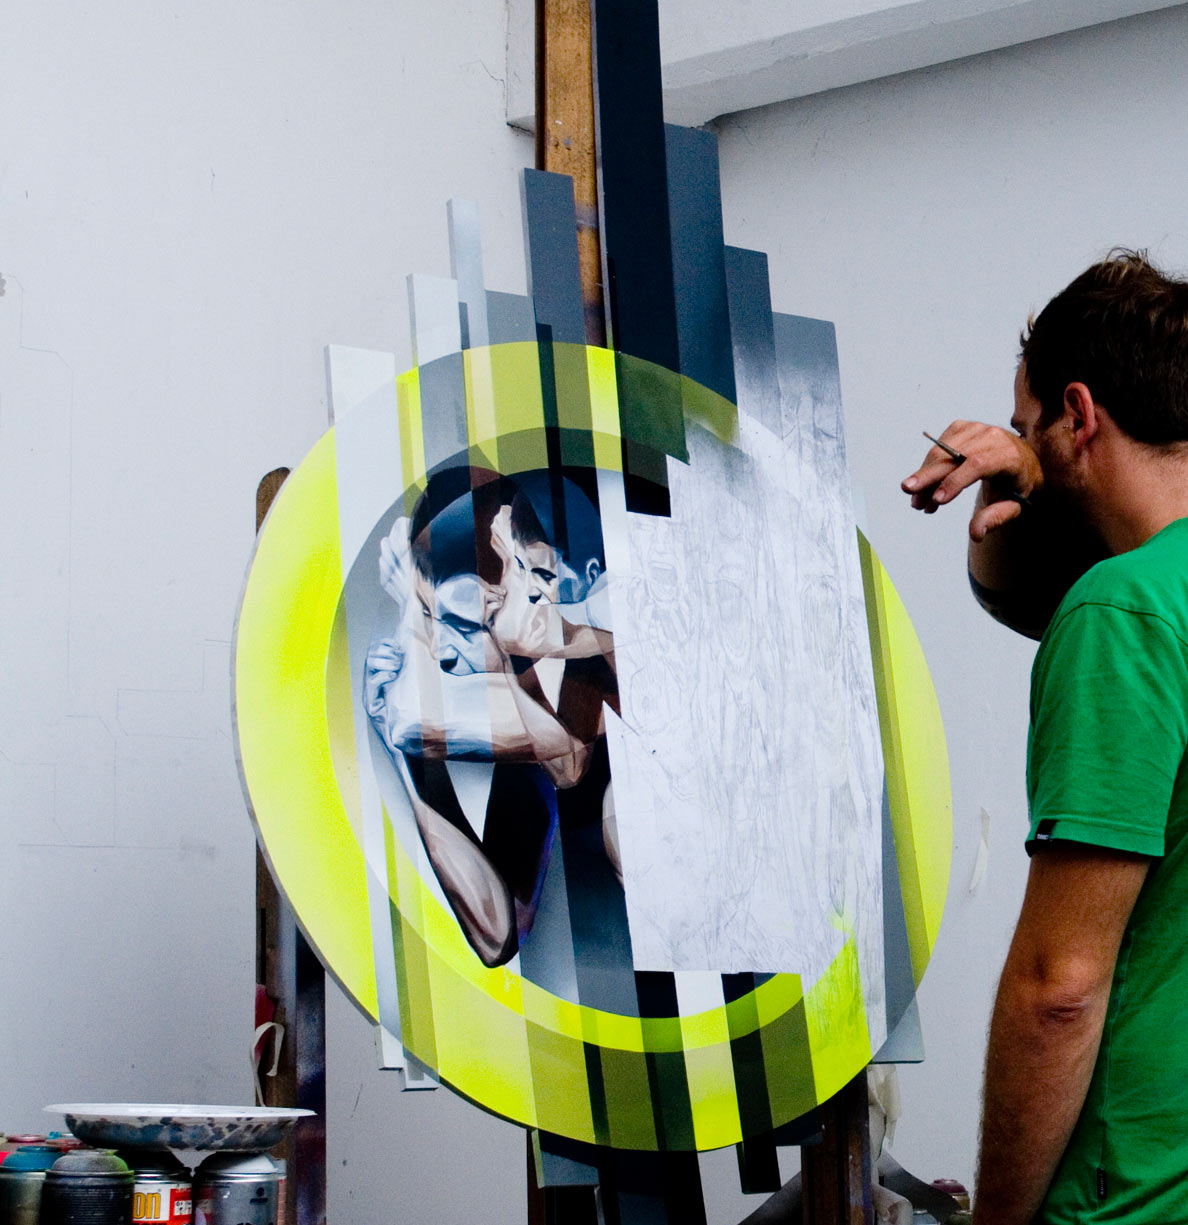 "Morten Andersen & Vesod ""Remix Every Second"" @ C.A.V.E. Gallery: CAVE_Vesod_Yell_progress_2014.jpg"